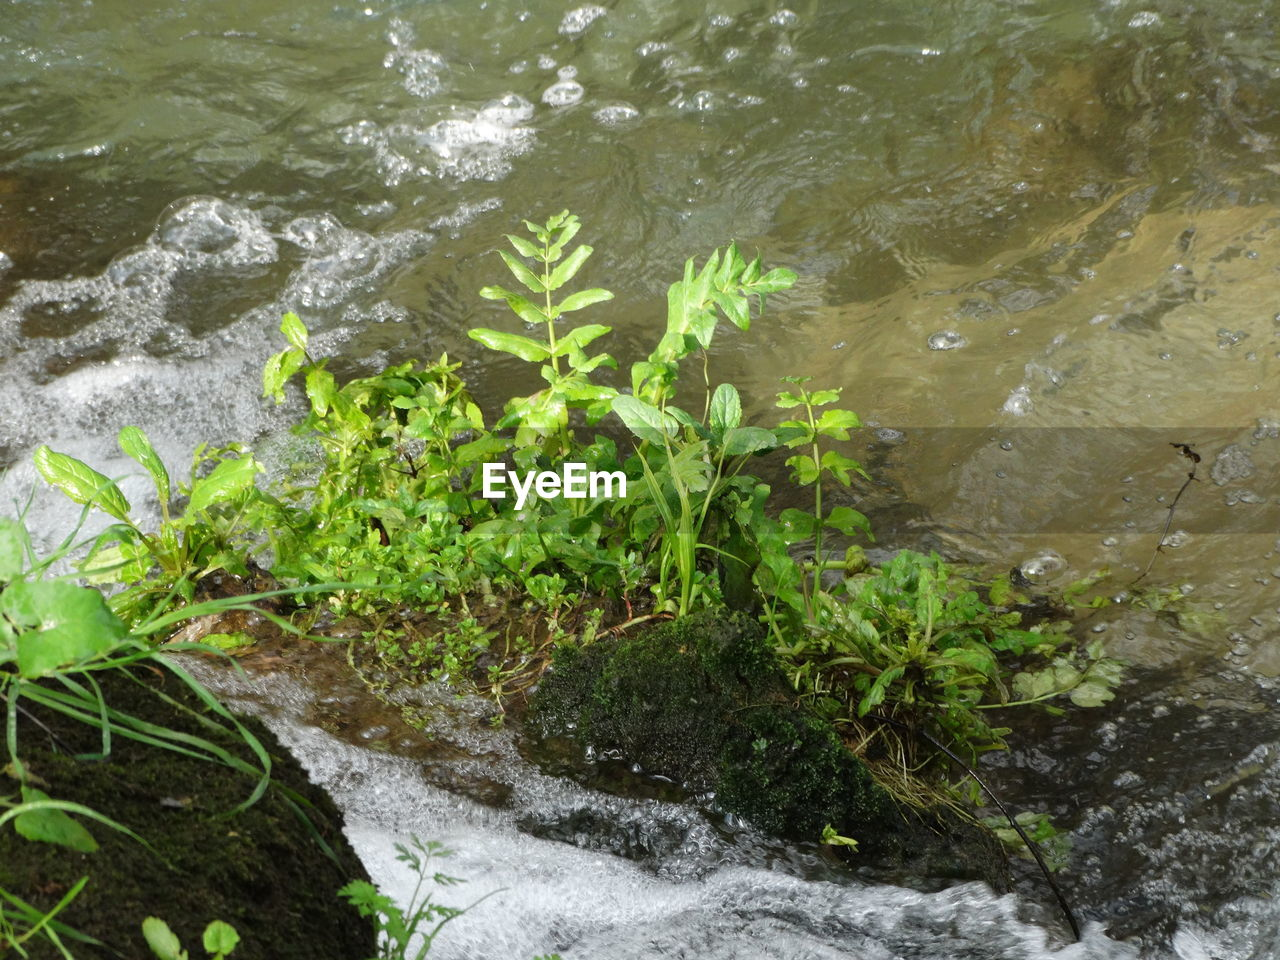 water, high angle view, motion, nature, rock - object, river, day, no people, outdoors, plant, waterfall, leaf, beauty in nature, freshness, close-up